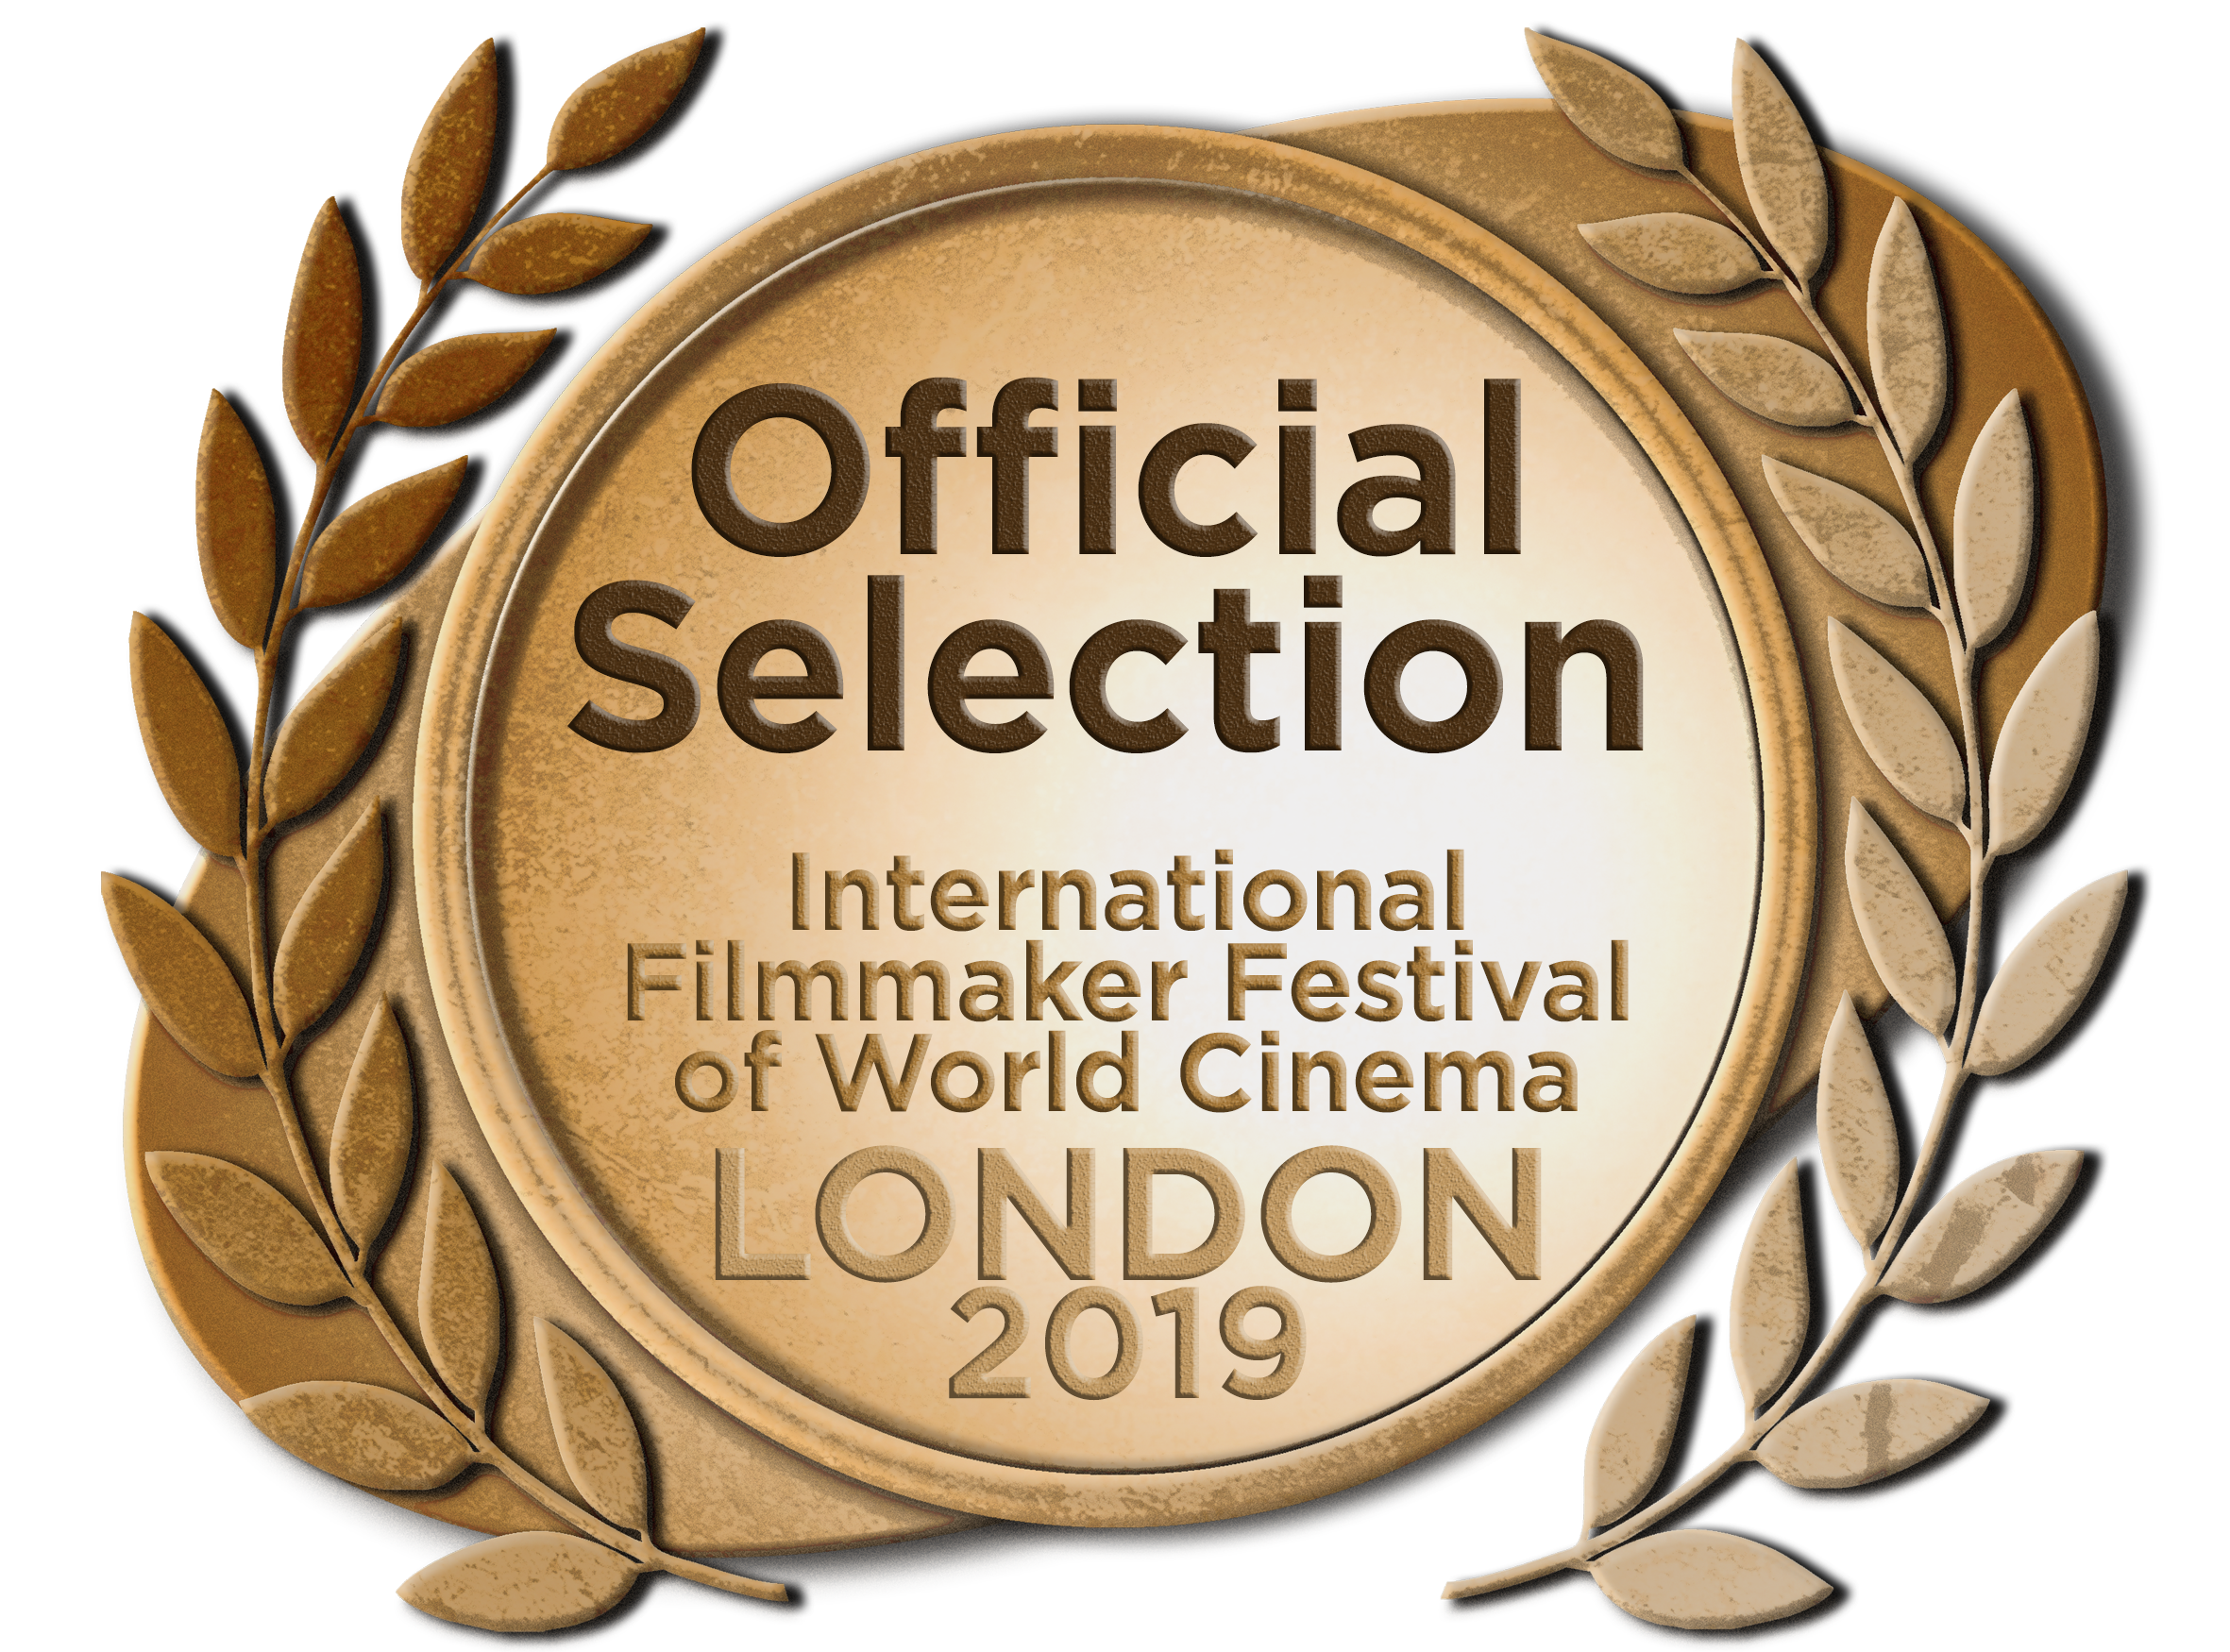 Official Selection - International Filmmaker Awards, London for Best Unproduced Script